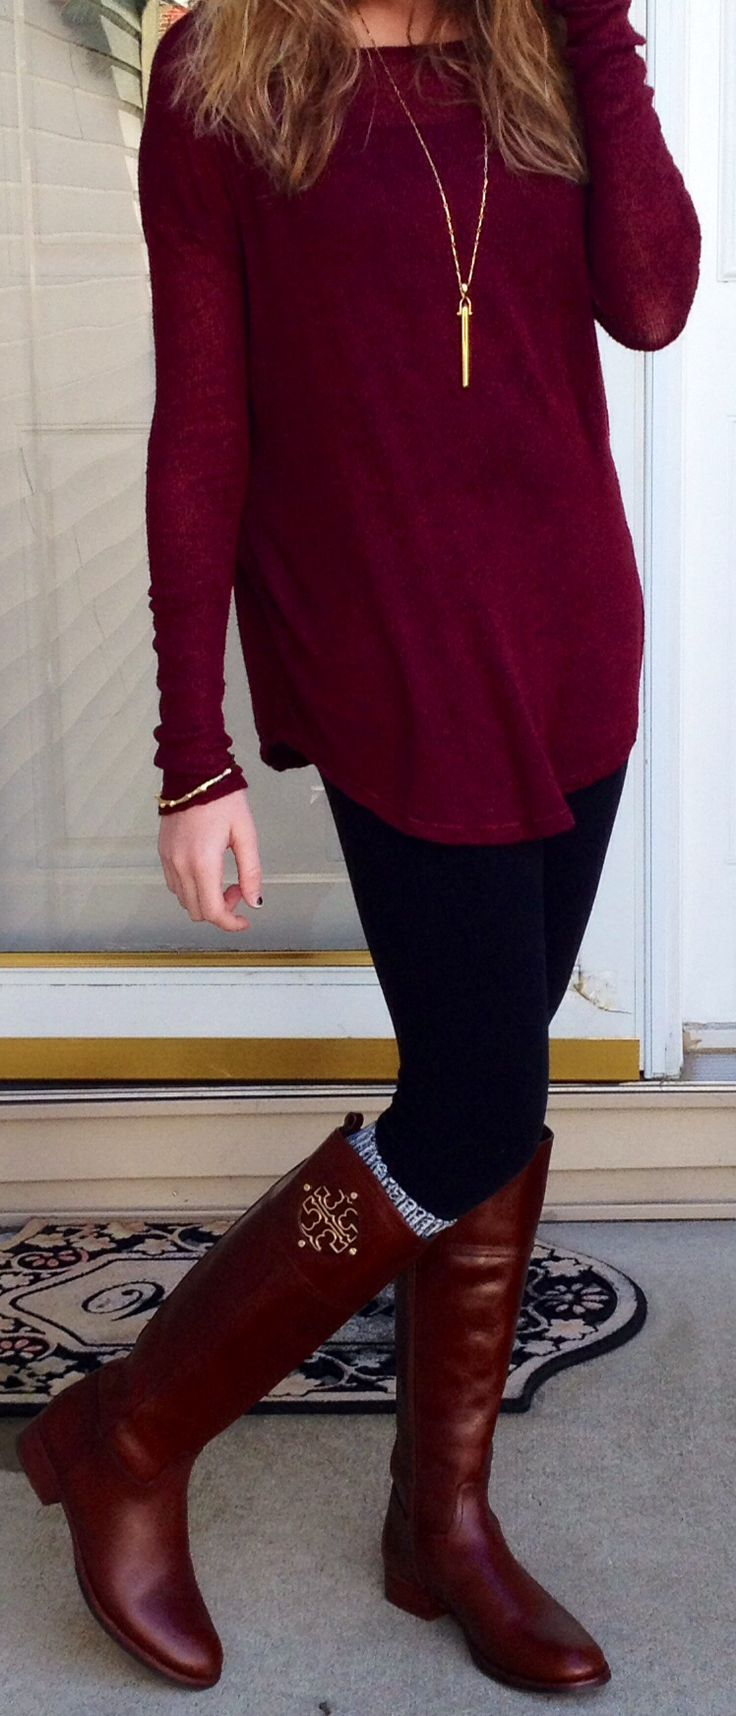 Burgundy + tall boots